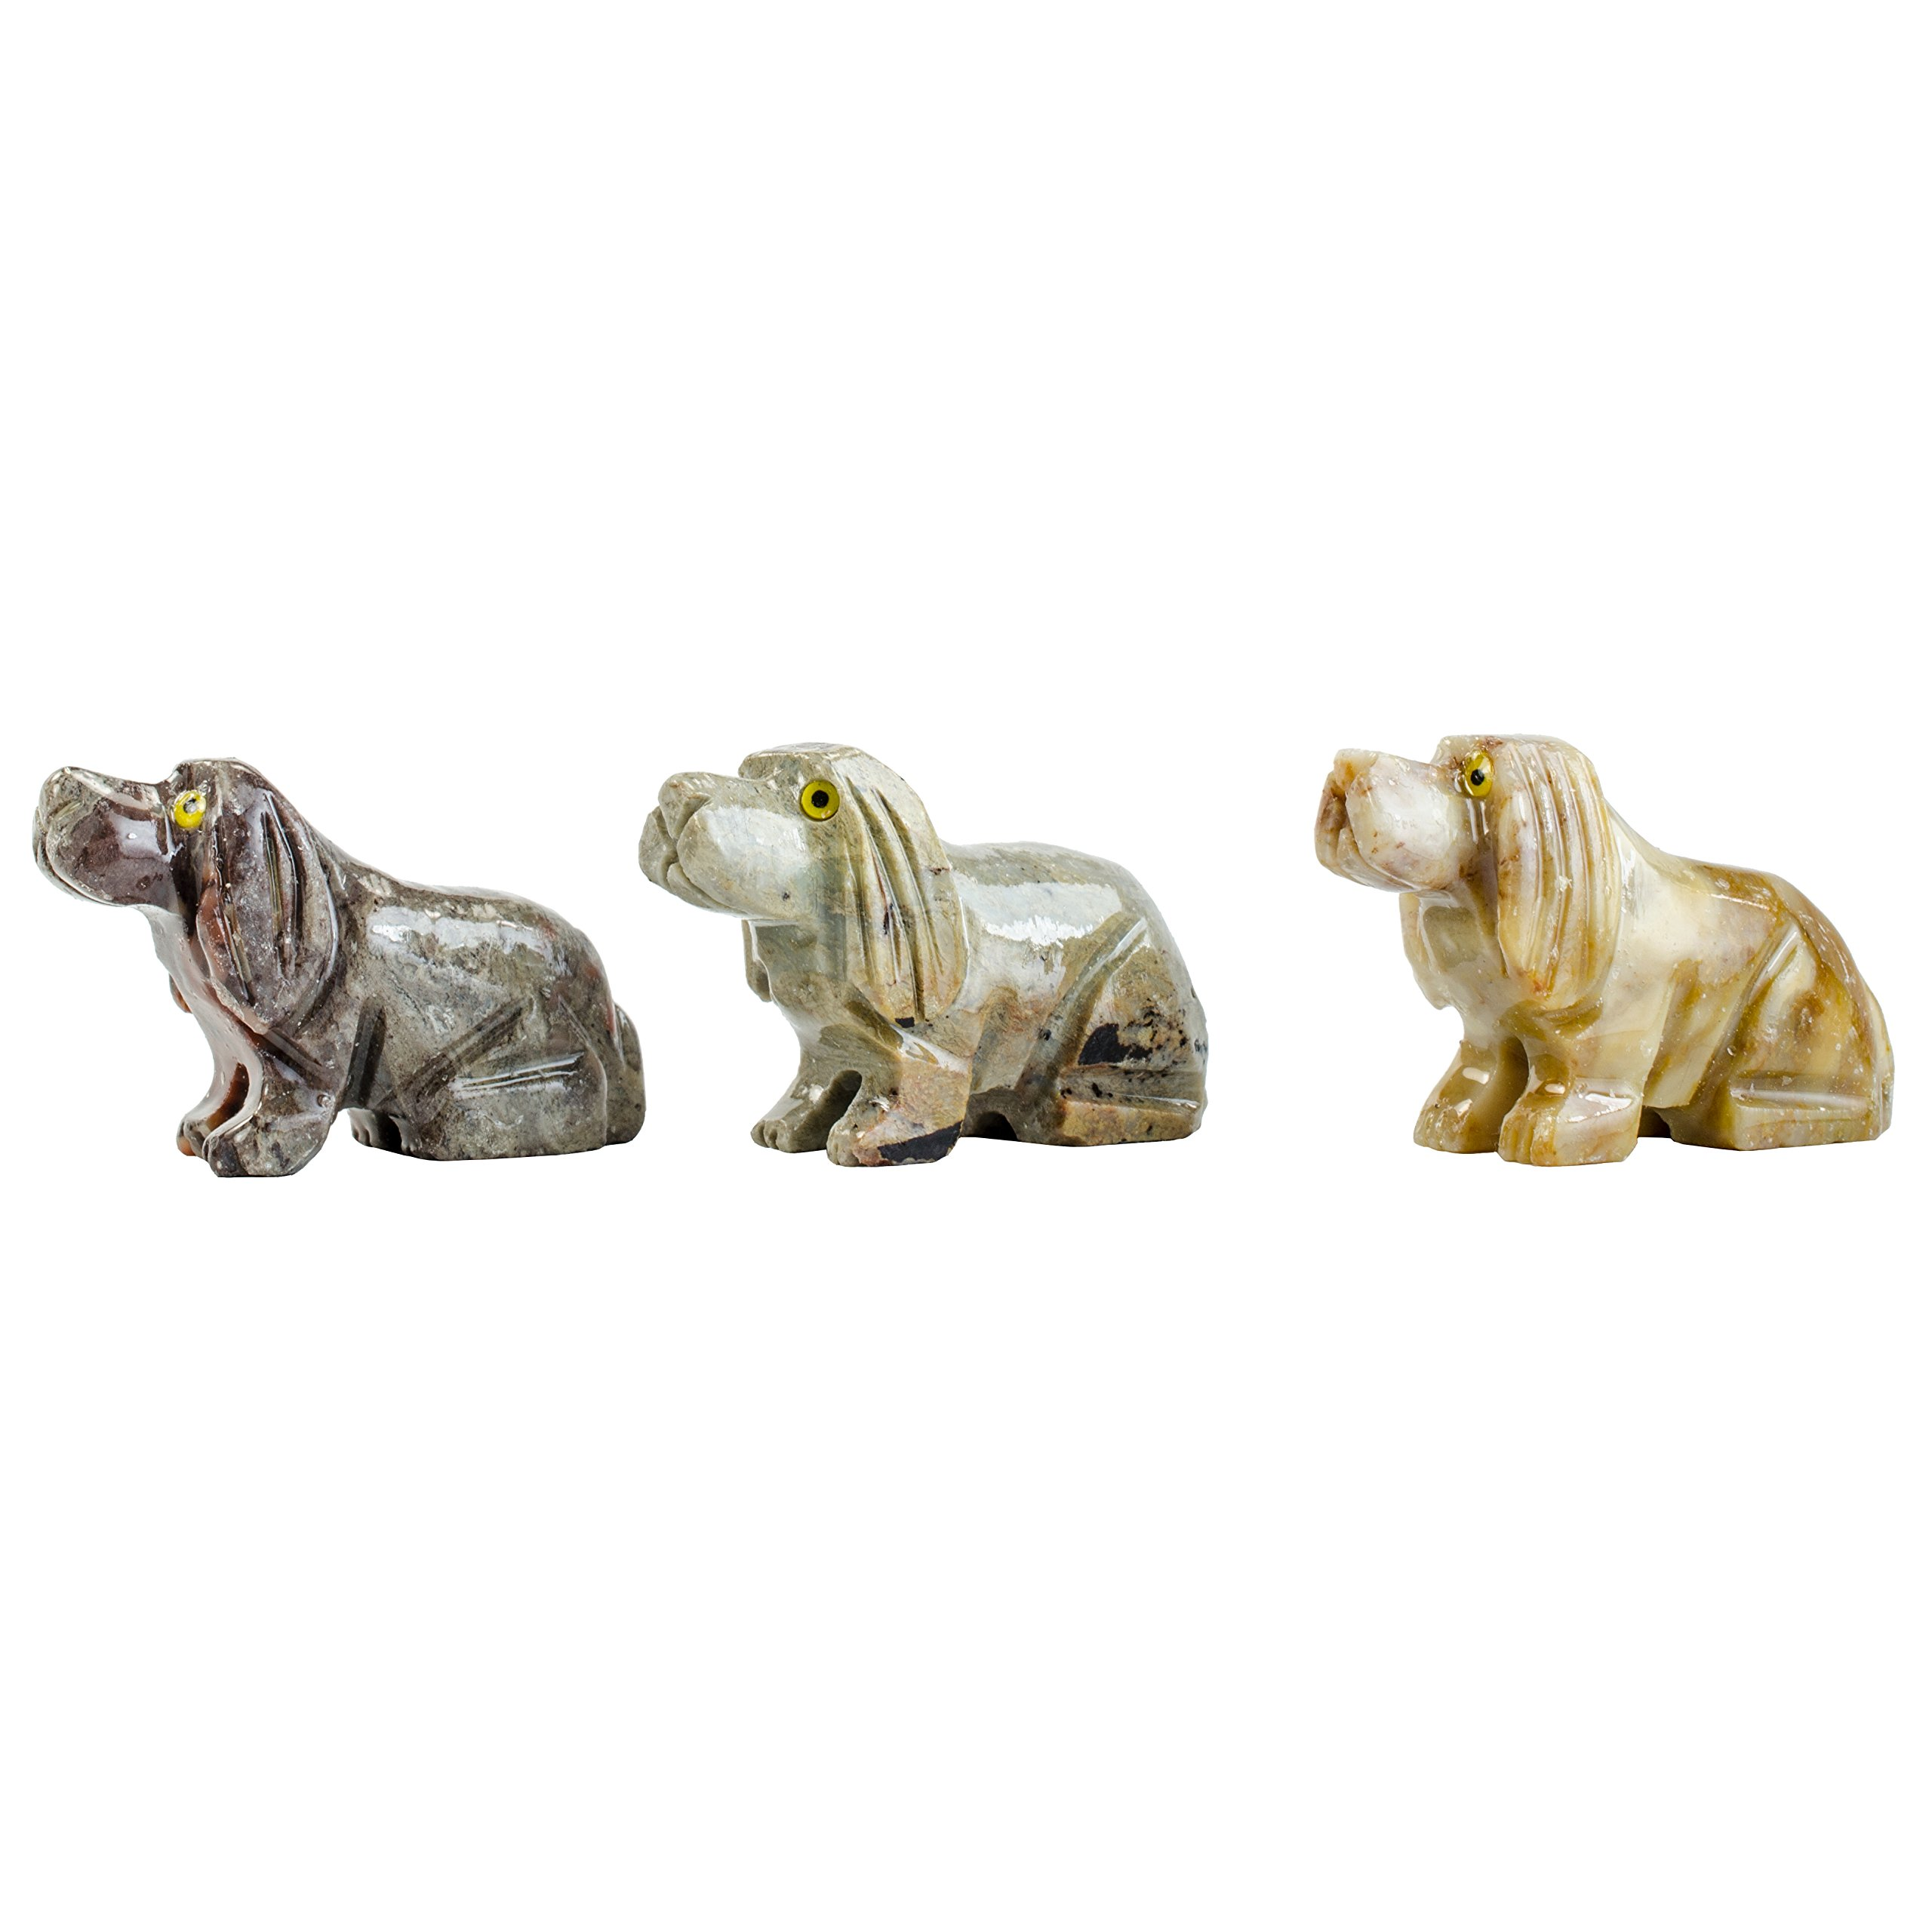 Digging Dolls : 30 pcs Artisan Hound Dog Collectable Animal Figurine - Party Favors, Stocking Stuffers, Gifts, Collecting and More!